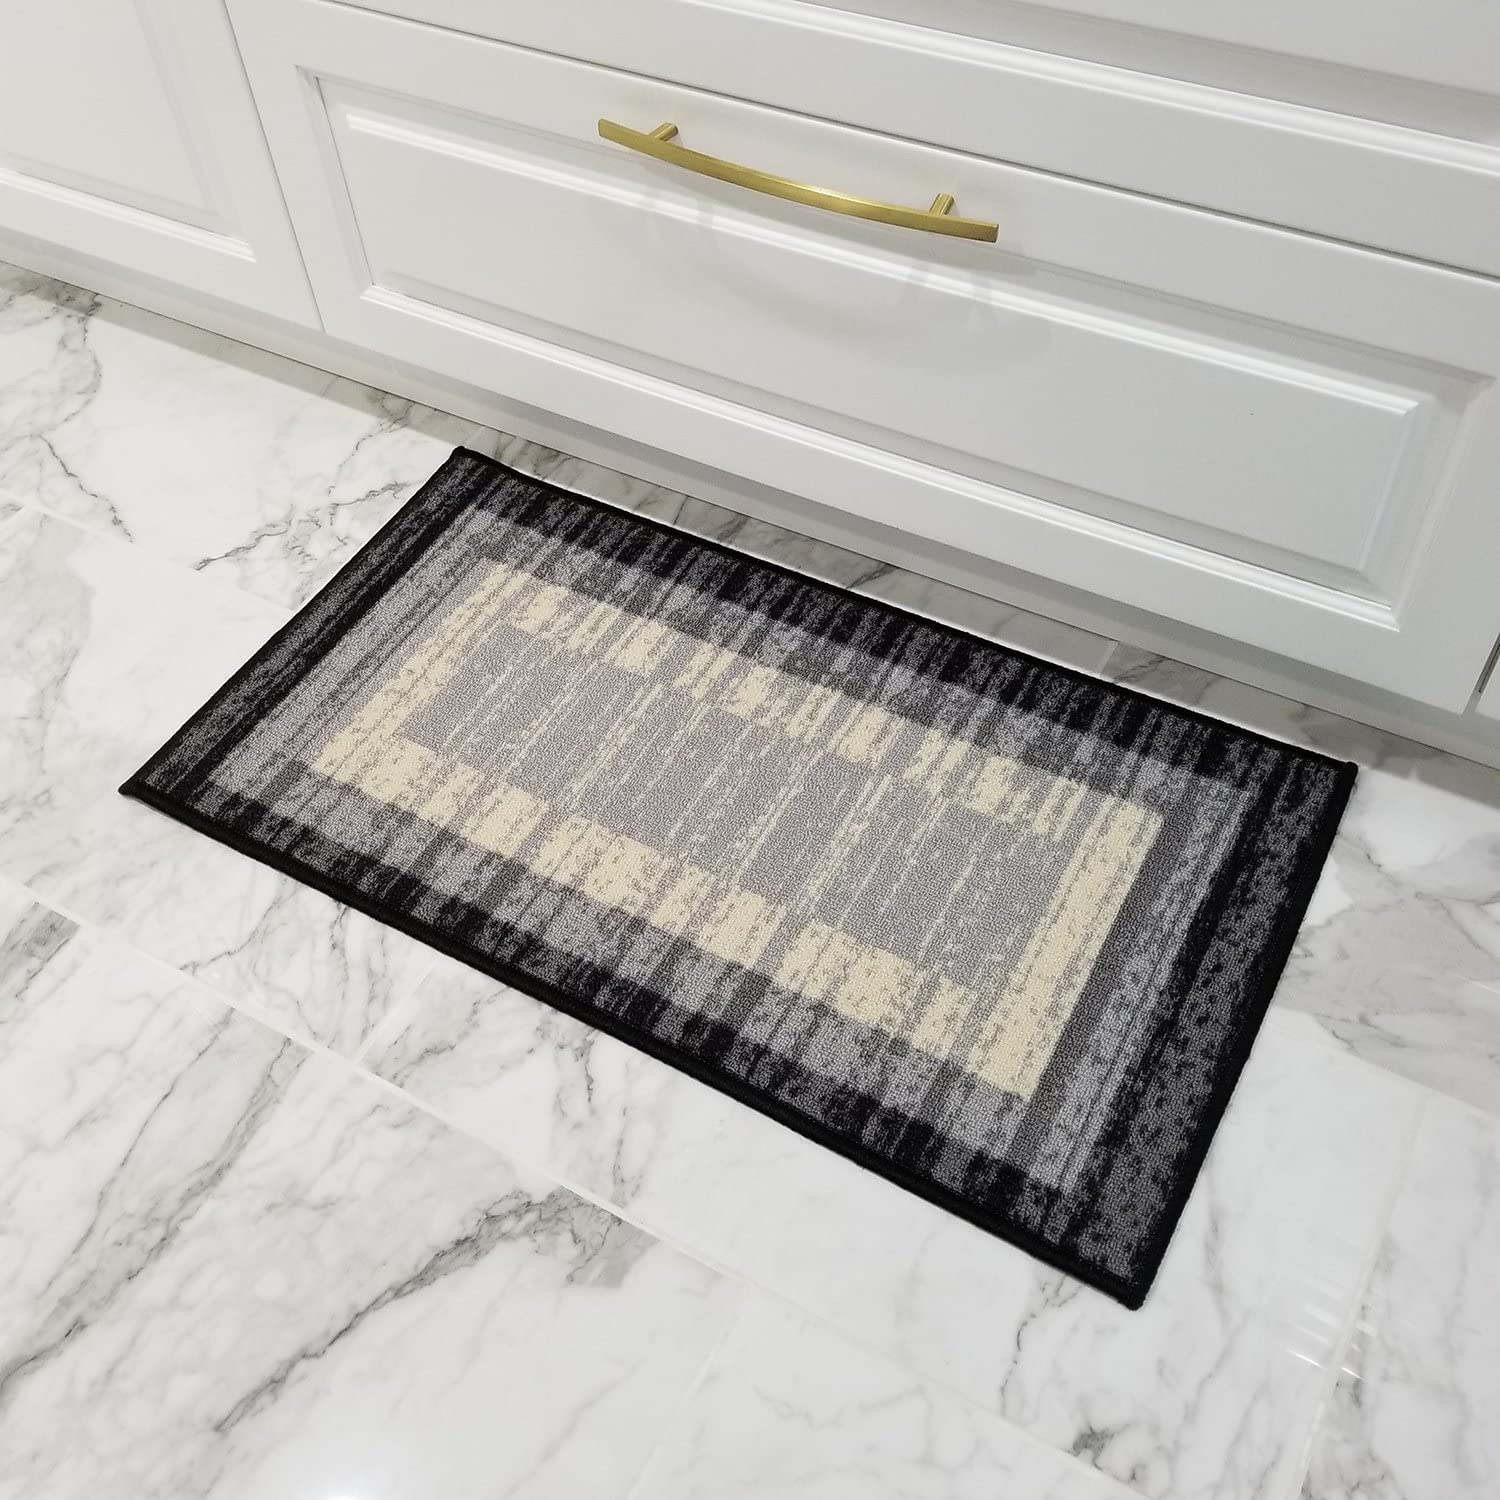 Doormat 18x30 Gray Border Stripe Kitchen Rugs and mats | Rubber Backed Non Skid Rug Living Room Bathroom Nursery Home Decor Under Door Clearance Entryway Floor Non Slip Washable | Made in Europe